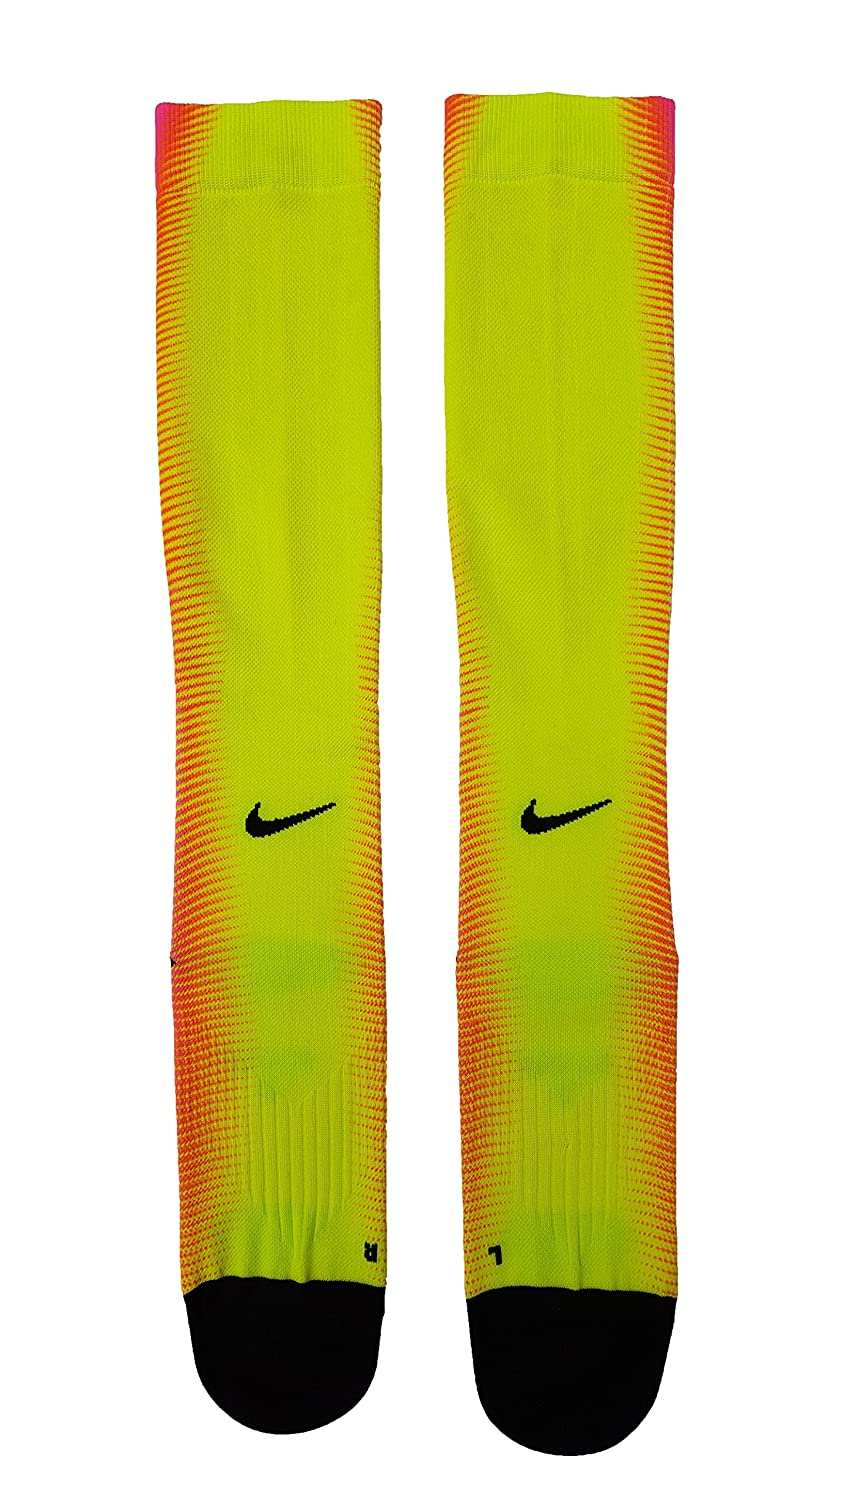 Calcetines de running Nike Dri-Fit Elite Digital Ink OTC (10-11.5 D (M) US, Multicolor): Amazon.es: Deportes y aire libre